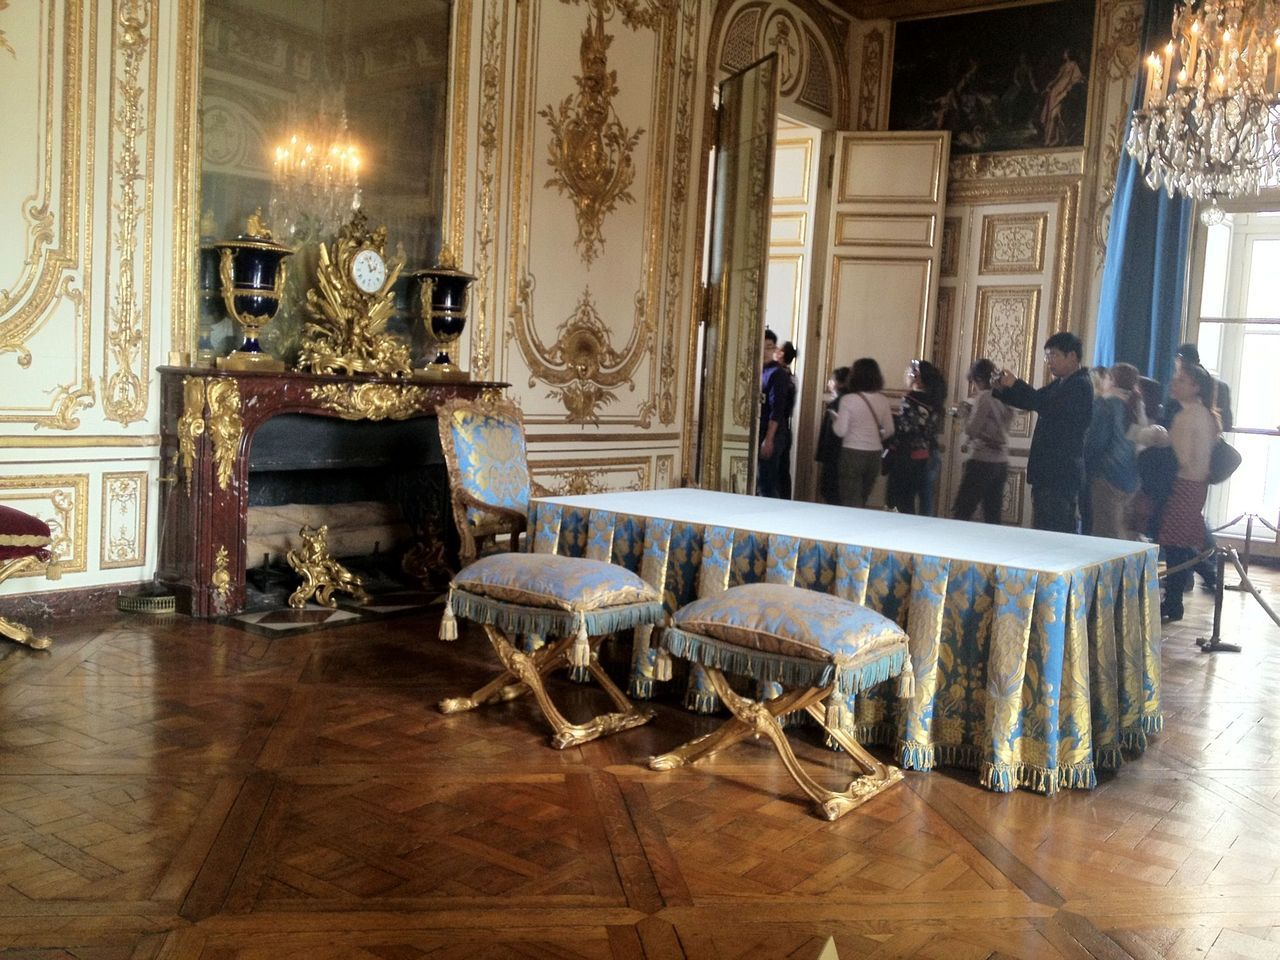 Paris, France; Château de Versailles - The Council Study